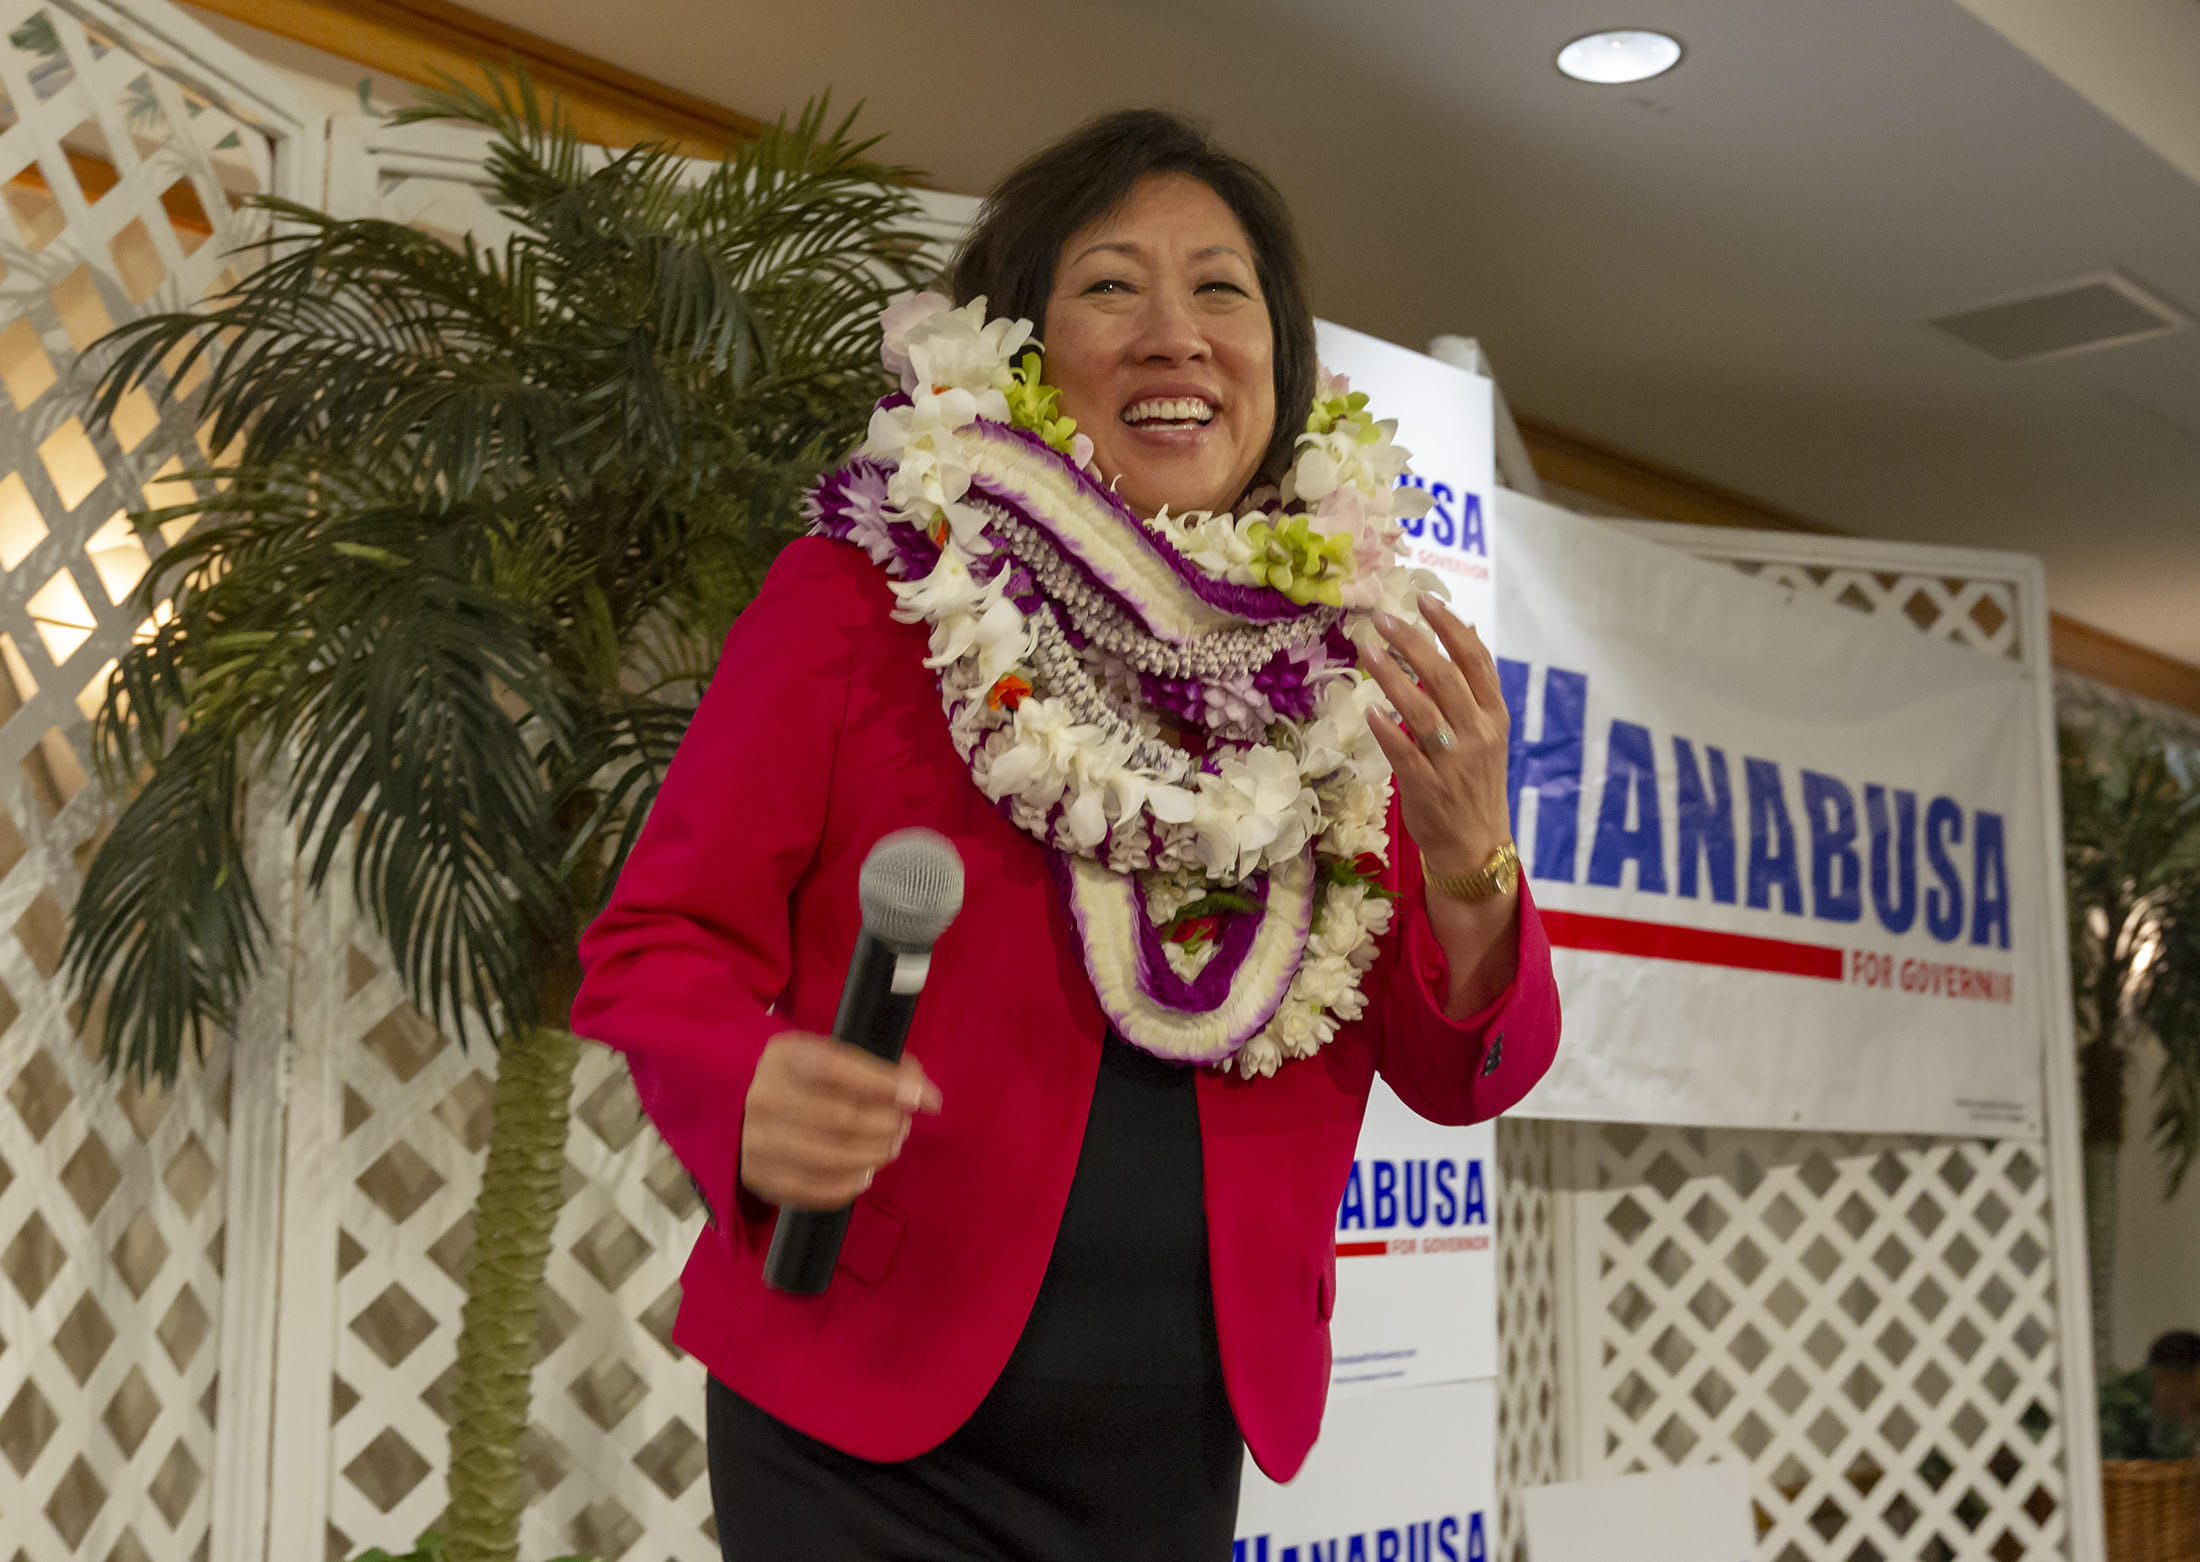 <p>Congresswoman Colleen Hanabusa thanks her supporters and concedes the gubernatorial primary race to Ige.</p>